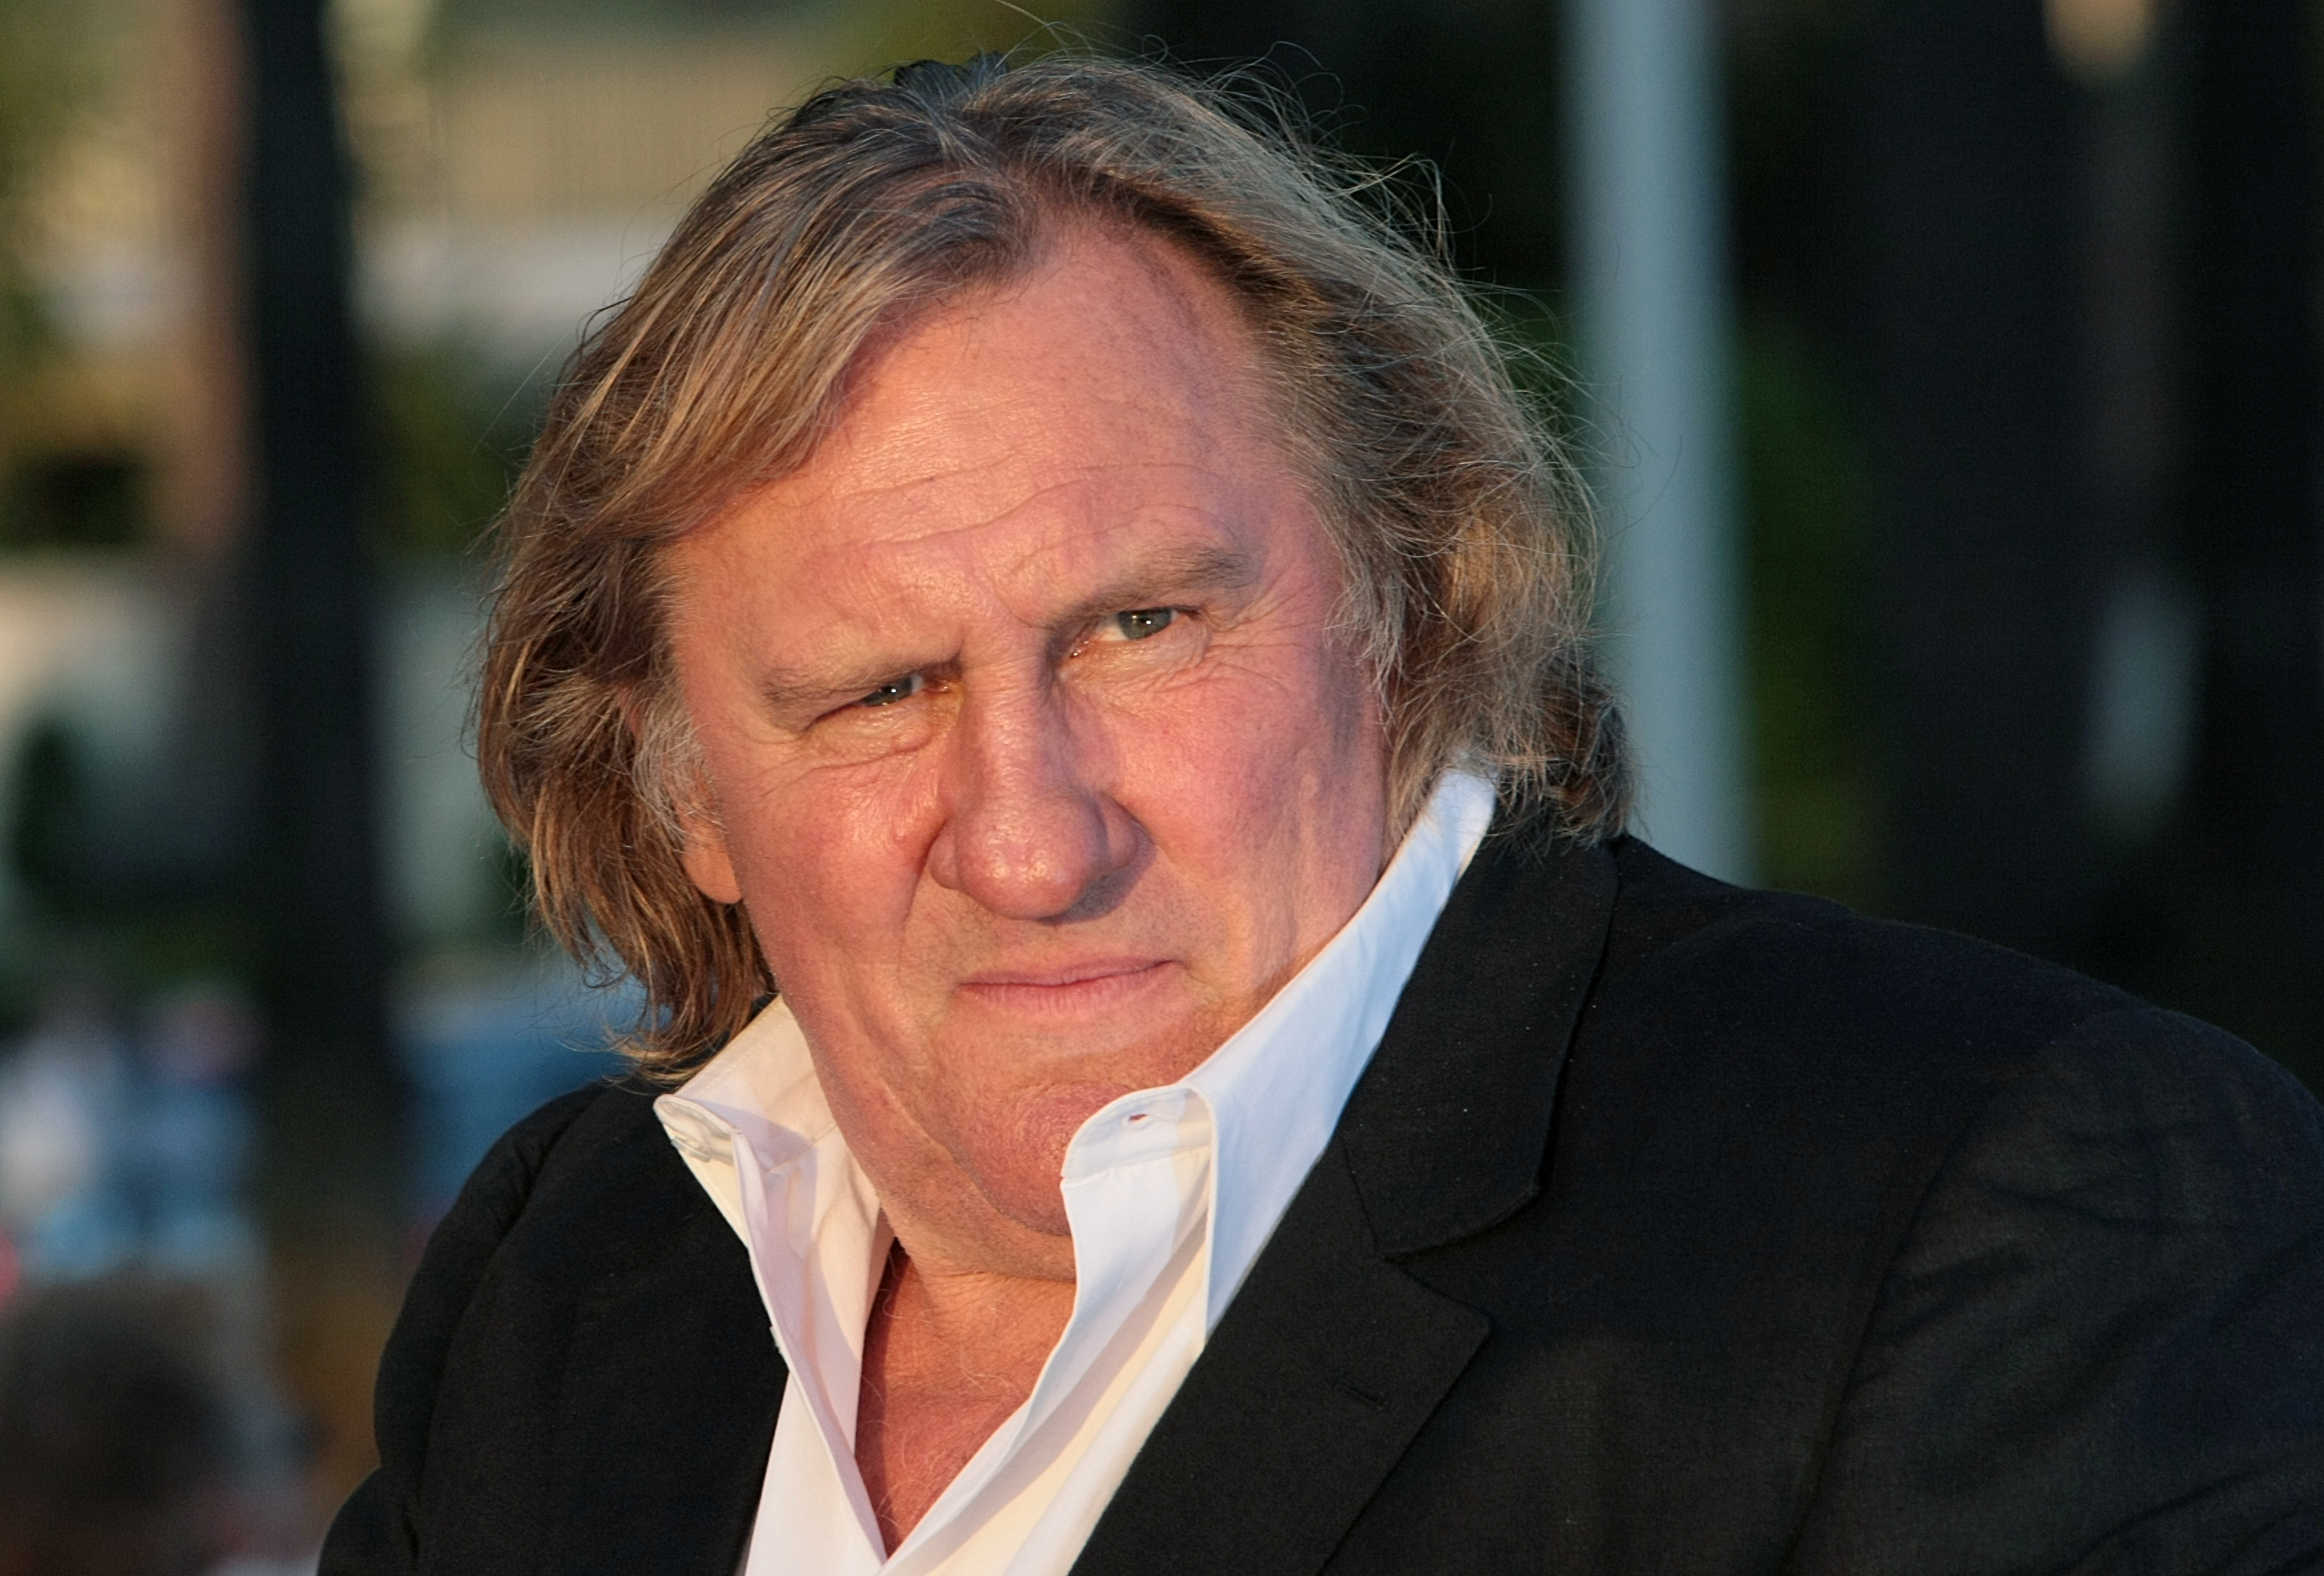 (FILES) - A file picture taken on May 20, 2010 in Cannes shows French actor Gerard Depardieu attending a TV show. Russian President Vladimir Putin on January 2, 2013 signed a decree granting Russian citizenship to the French movie star, who has threatened to give up his French passport to protest a proposed tax hike on the rich.    AFP PHOTO / LOIC VENANCE